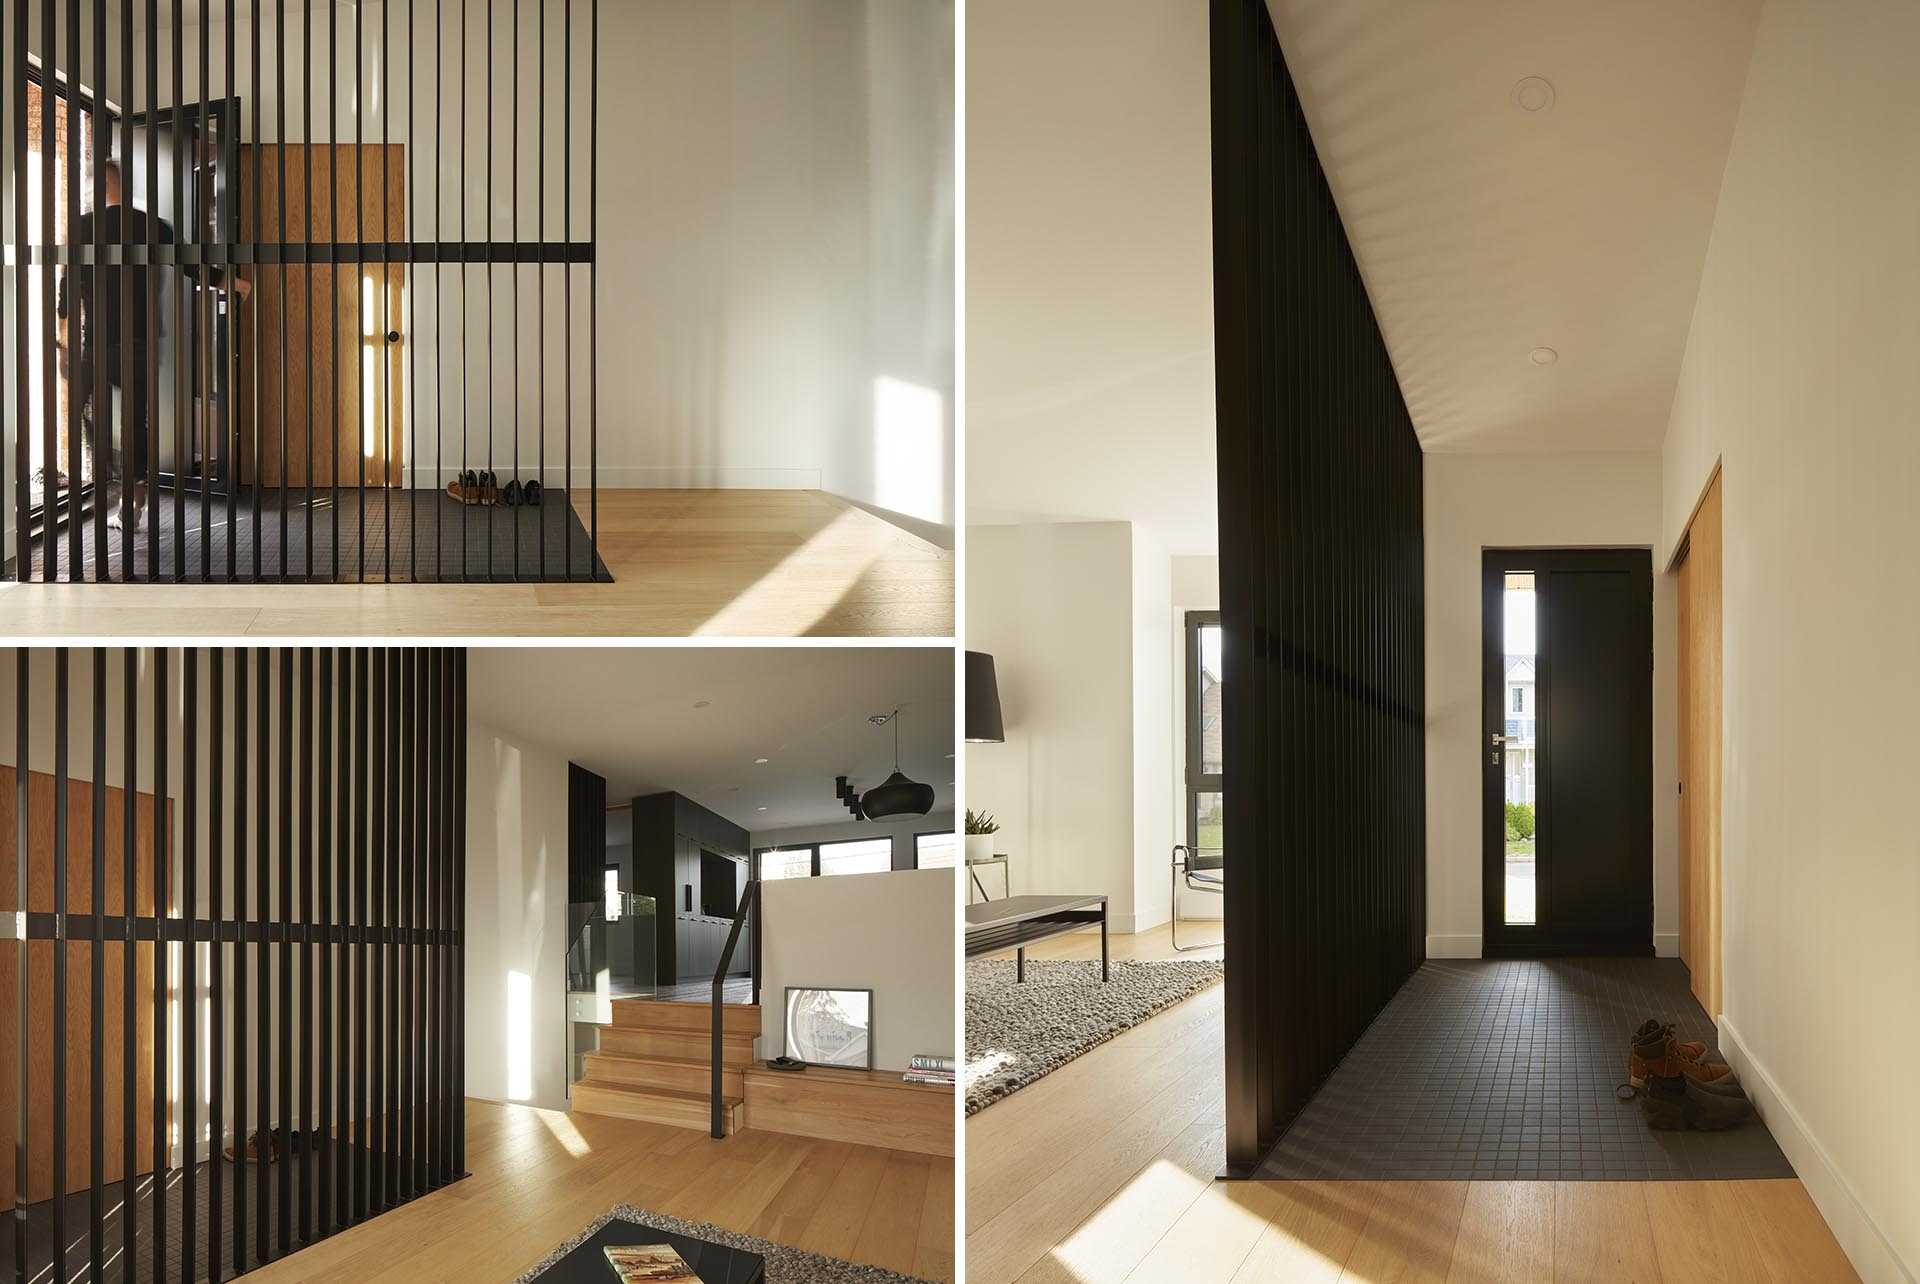 This modern room divider complements the dark tiled floor, allows the light from the living room to travel through to the entryway, and helps to define the entrance.